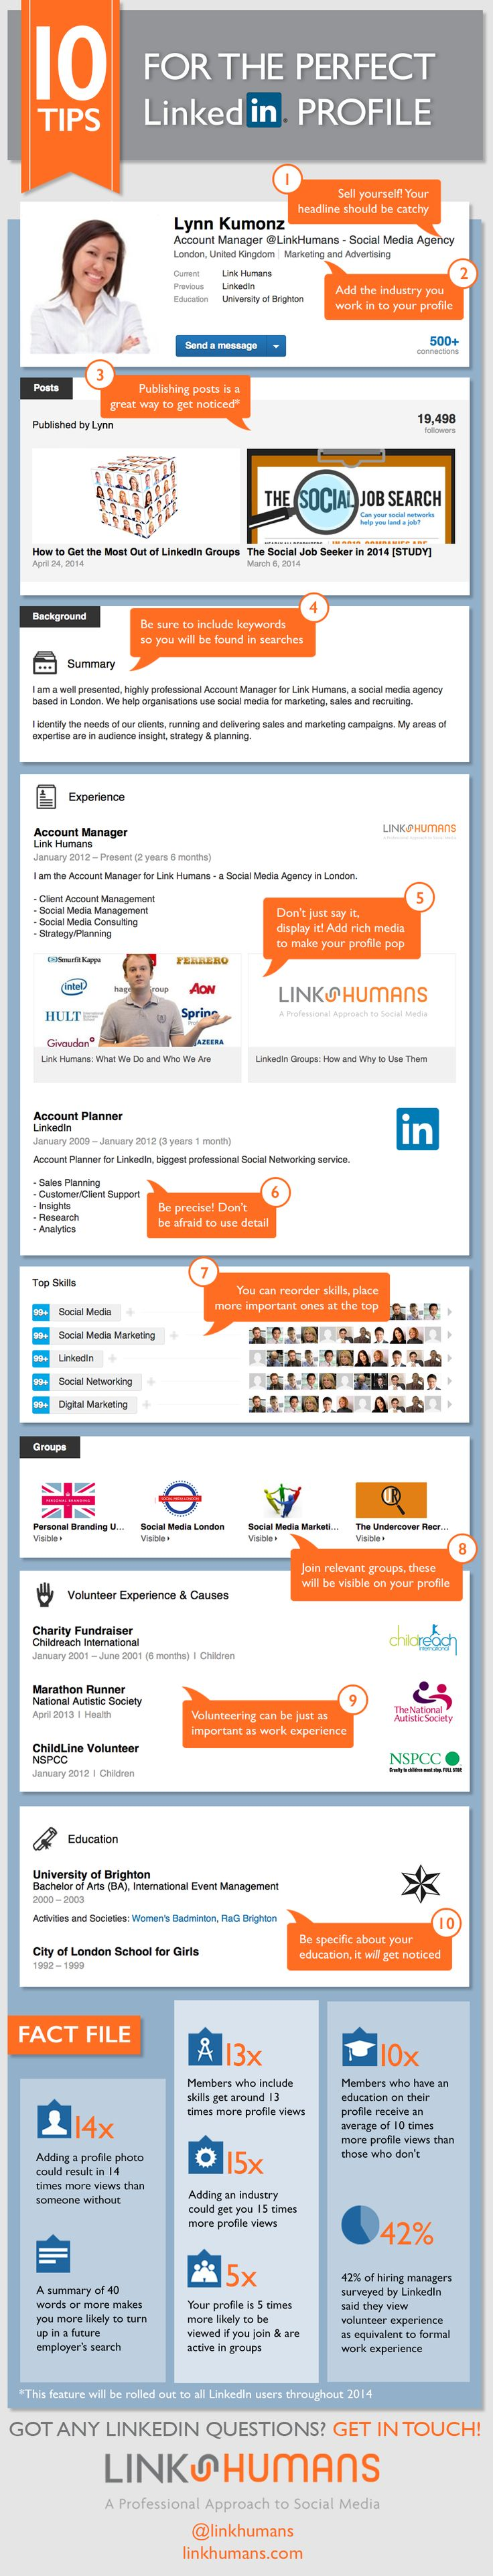 TheUndercoverRecruiter.com: The Ultimate Guide to Building a Killer LinkedIn Profile [Infographic]